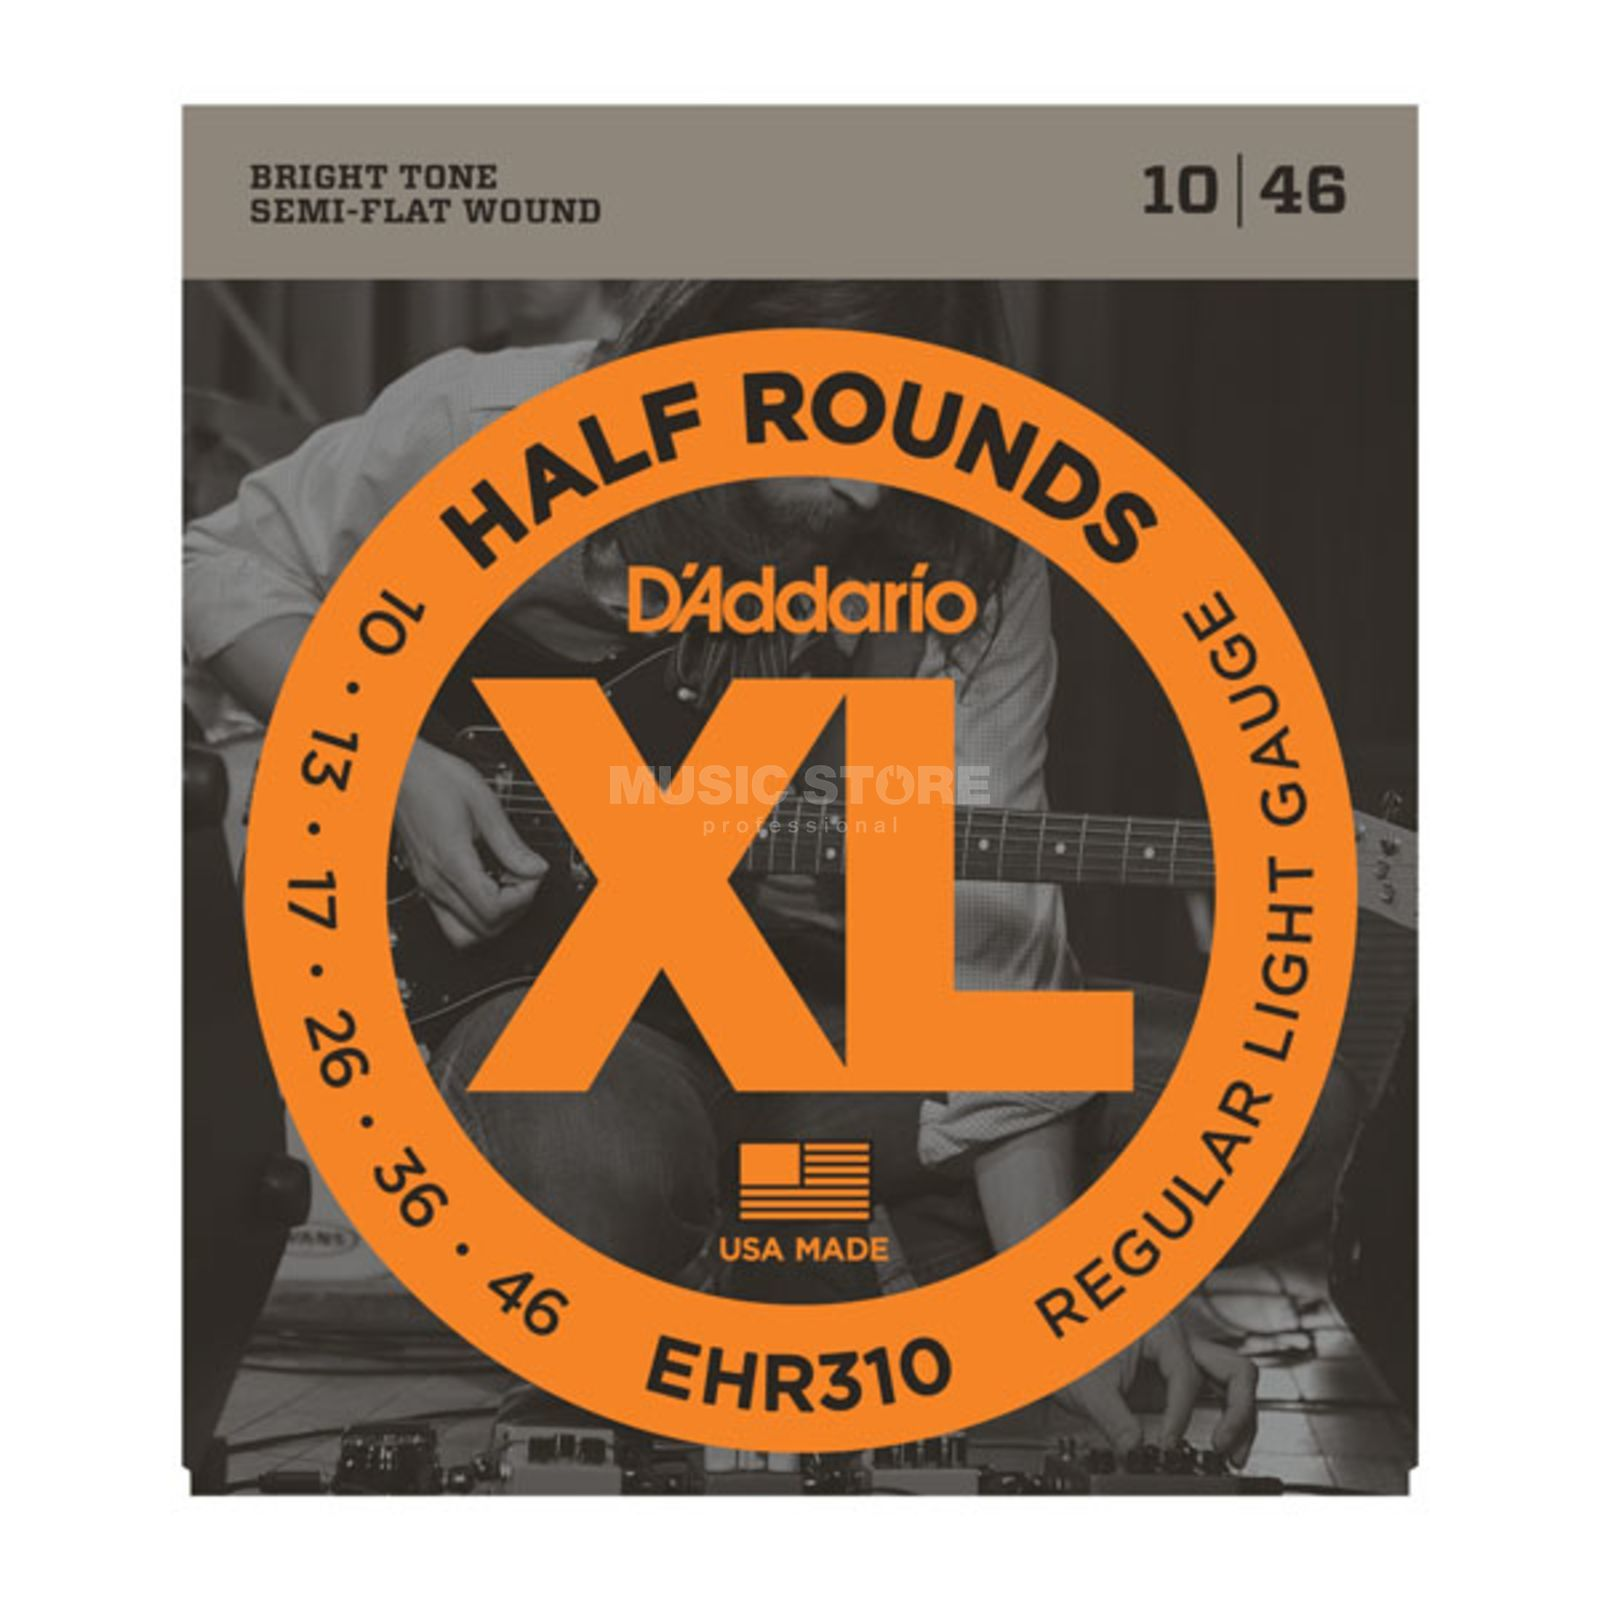 D'Addario E-Guitar Strings EHR310 10-46 Half Rounds Stainless Steel Produktbillede